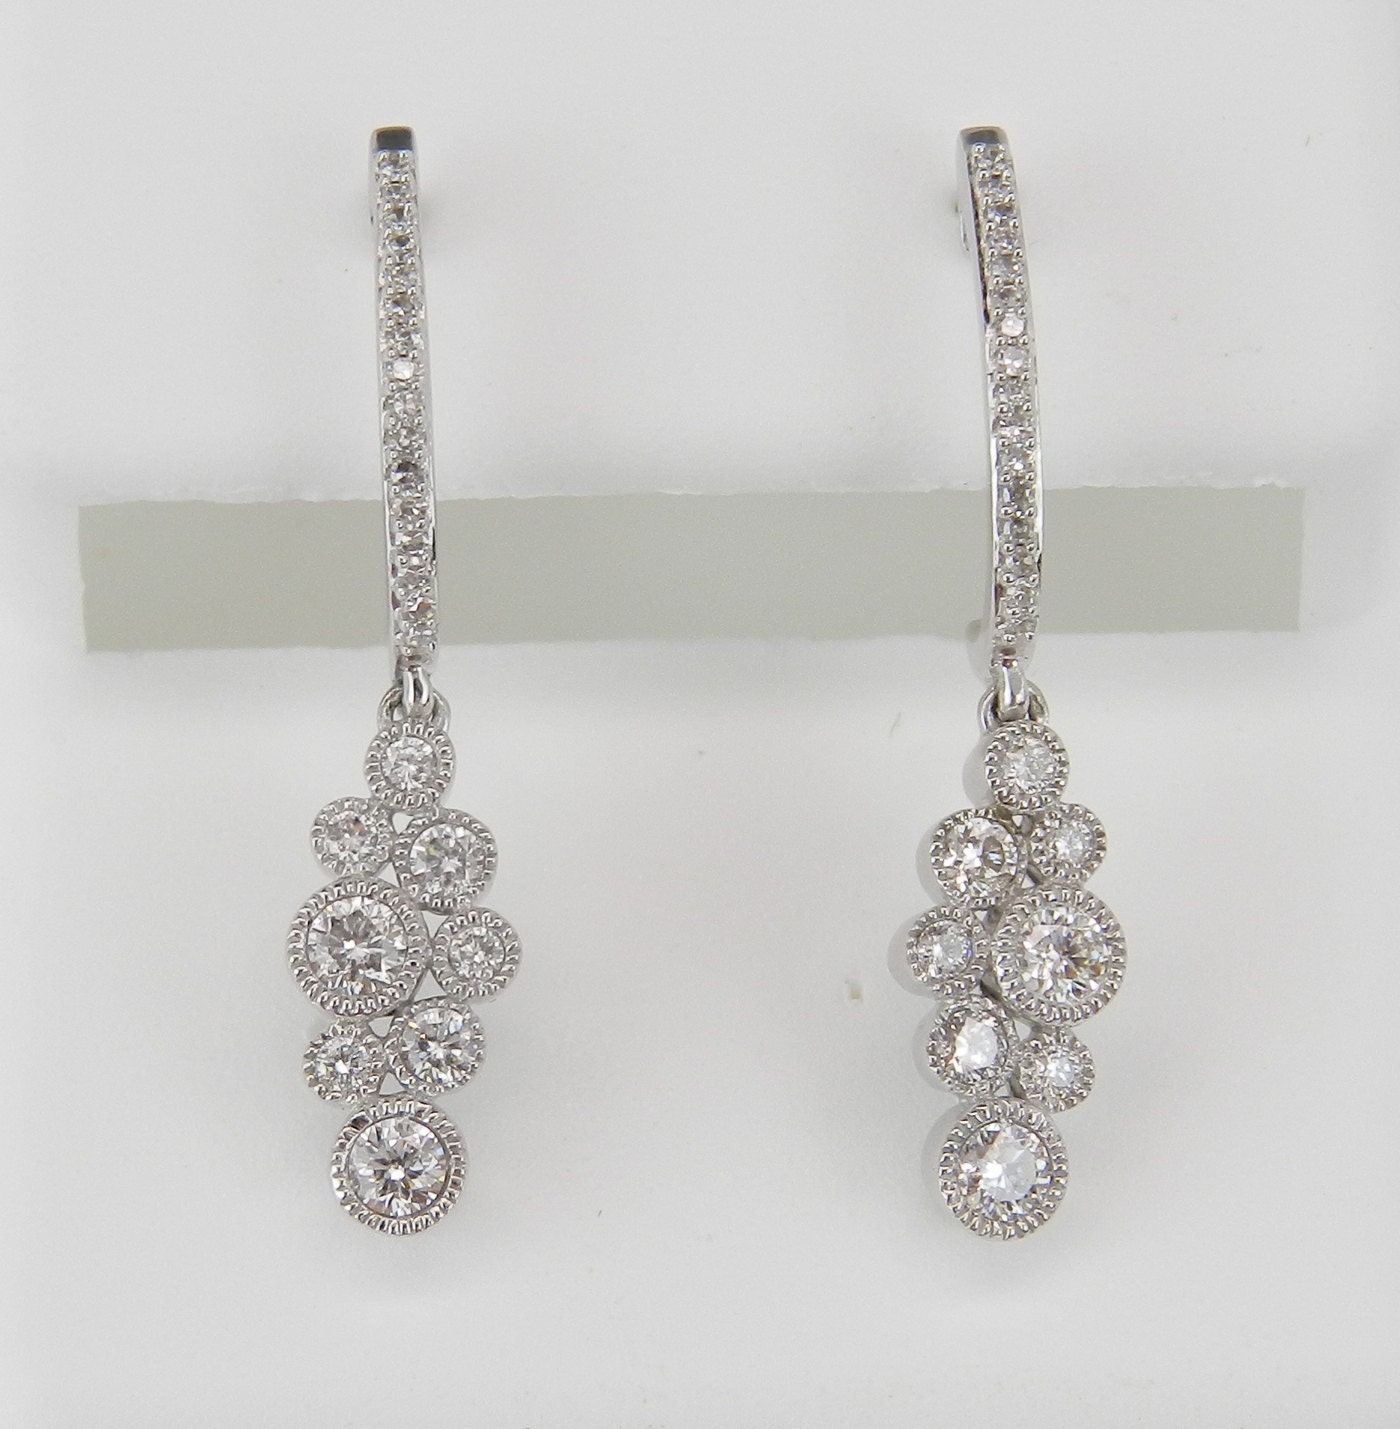 Diamond Earrings Dangle Drop Earrings White Gold Wedding Earrings Half Hoop